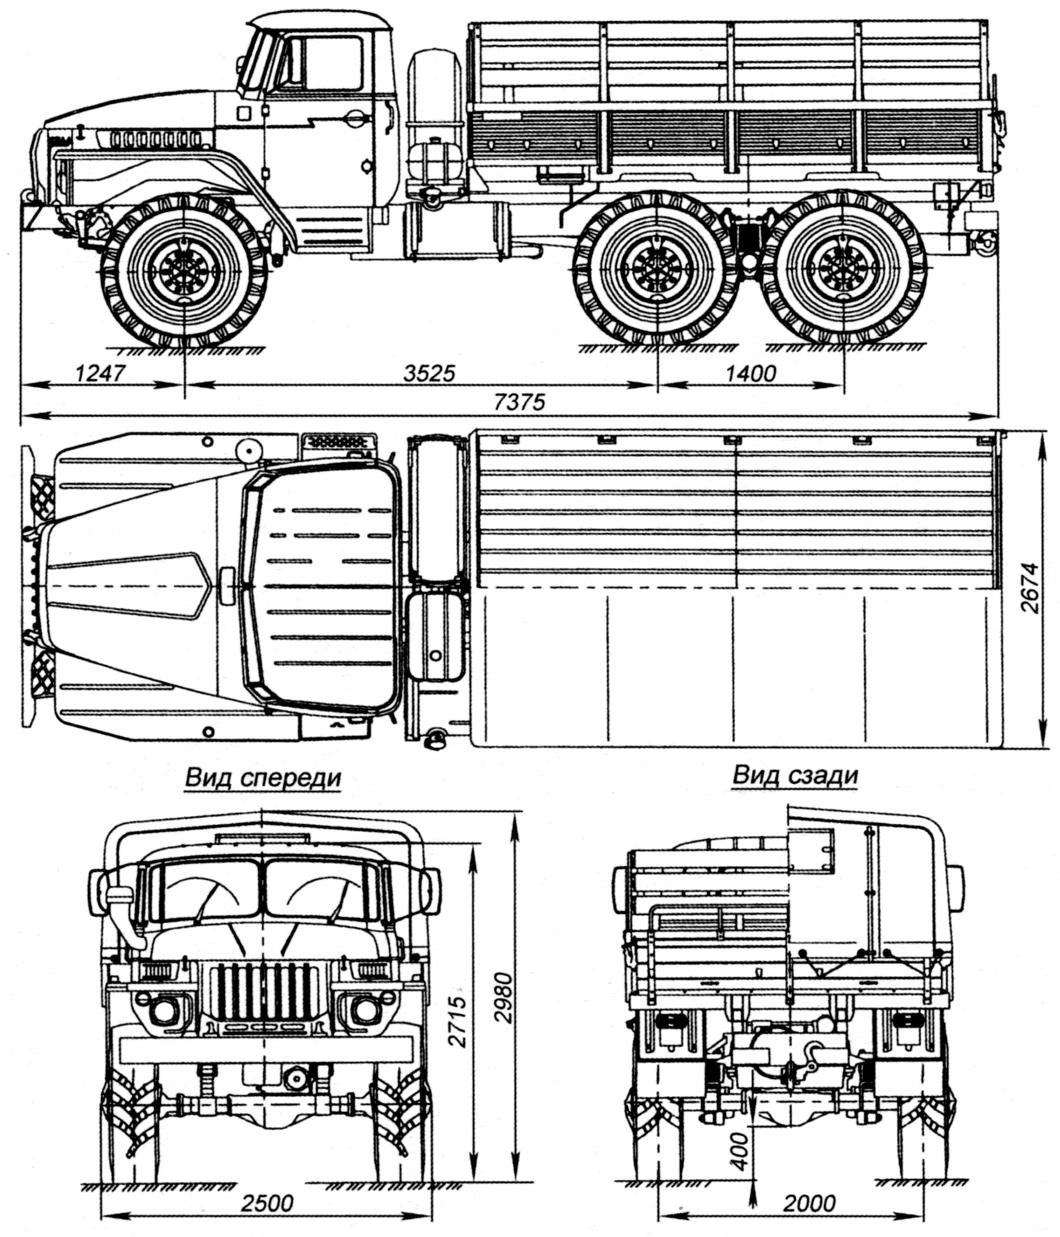 Multi-purpose four-wheel drive three-axle off-road vehicle